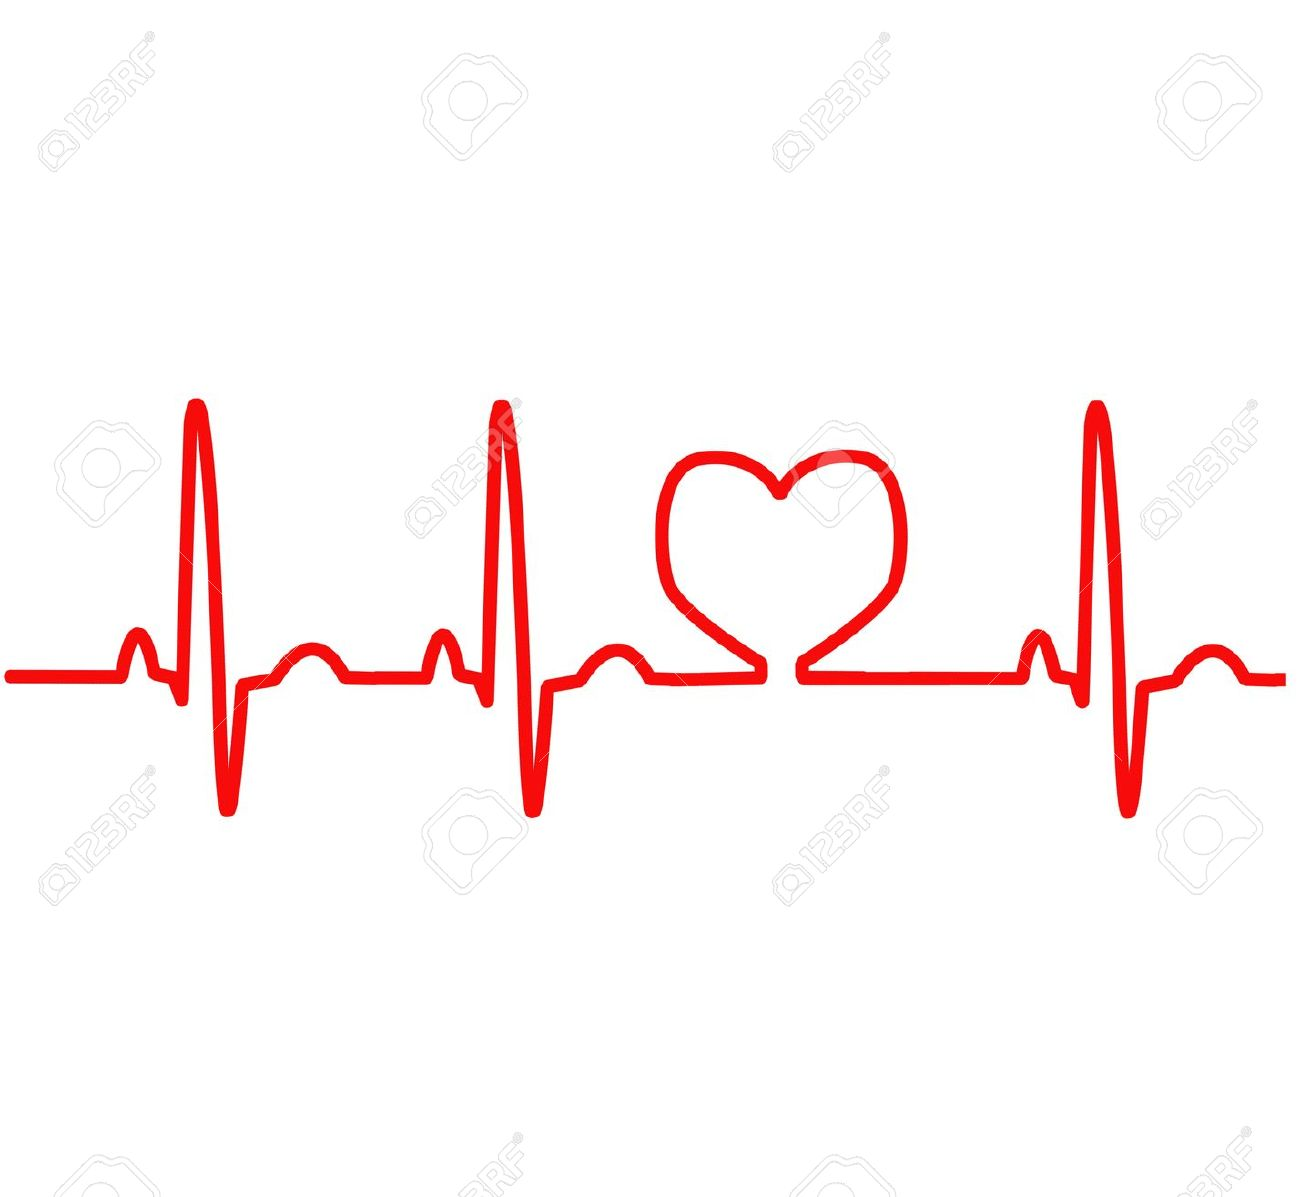 Love clipart heartbeat #7